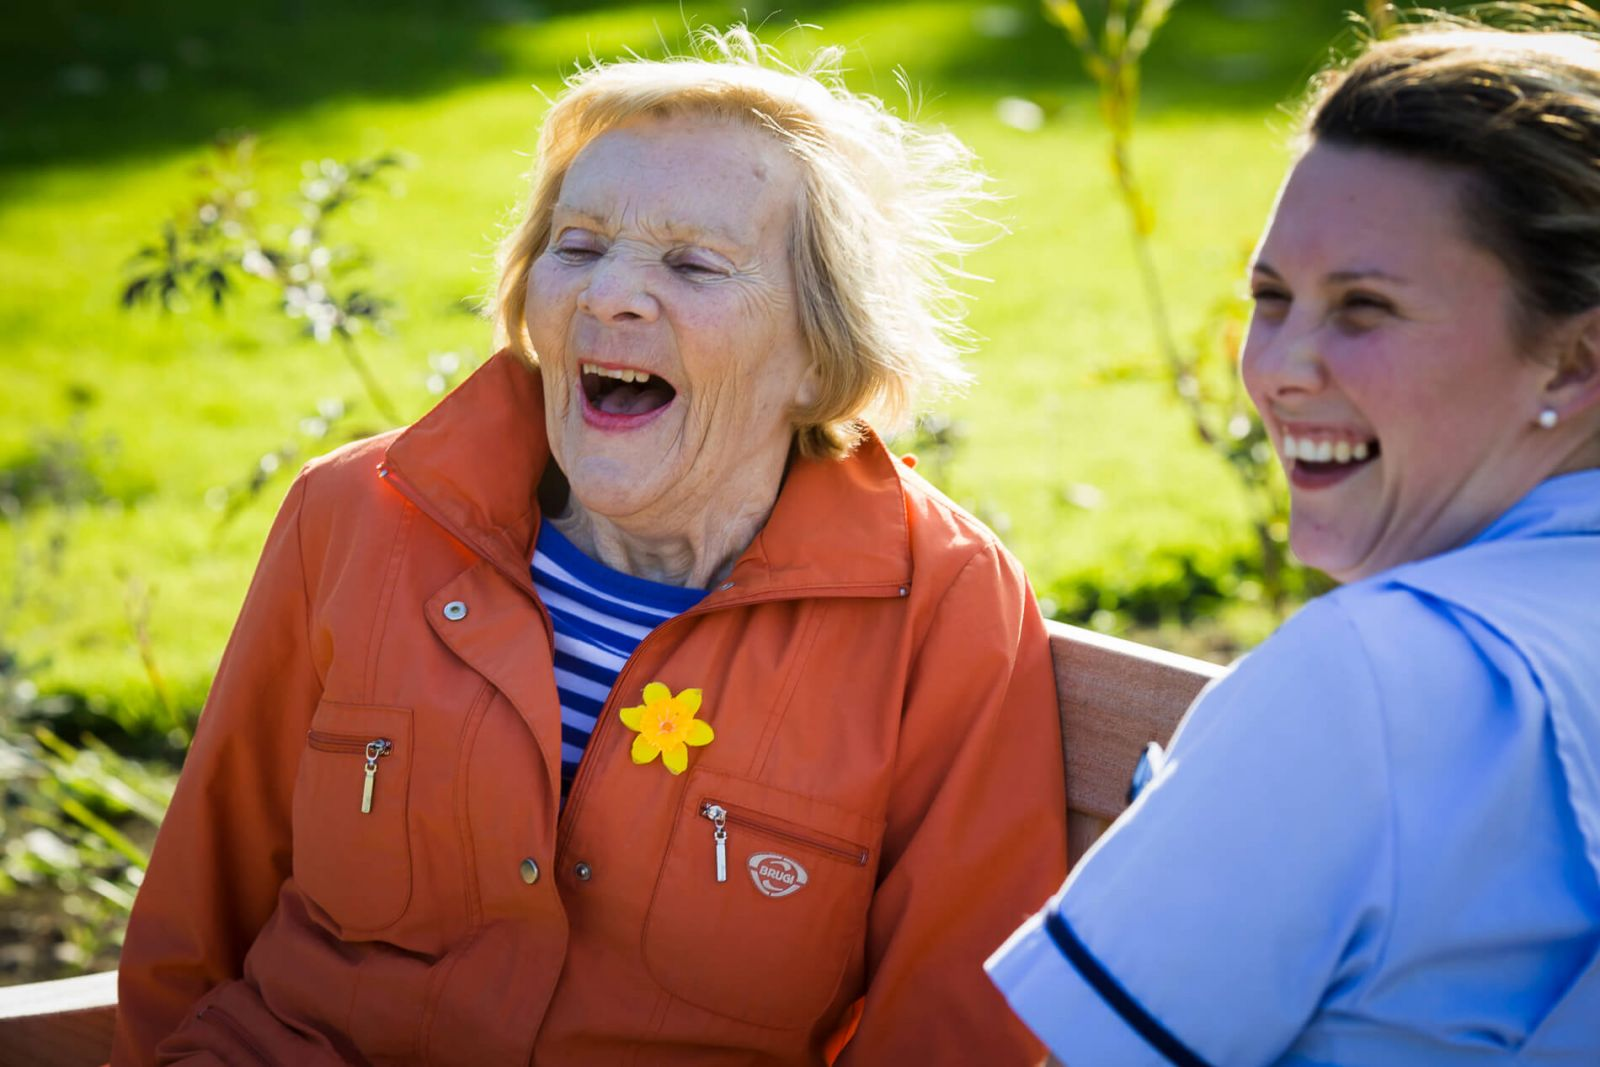 nurse and resident having a laugh in the garden